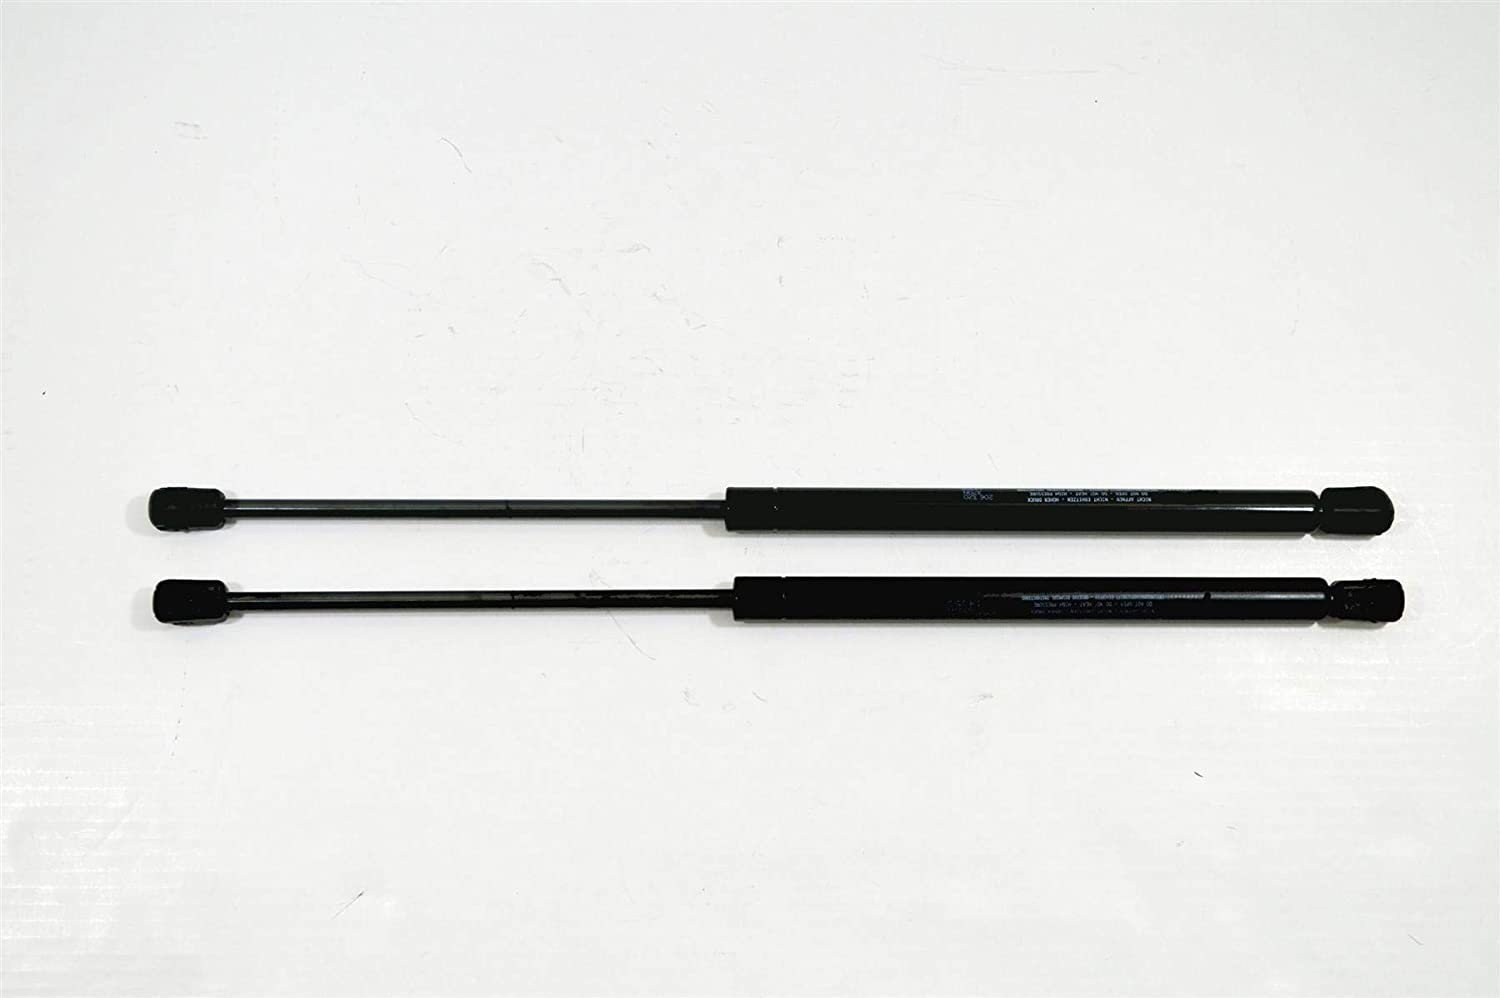 LSC 13182309 NEW from LSC Pair of Rear Hatchback Tailgate Struts